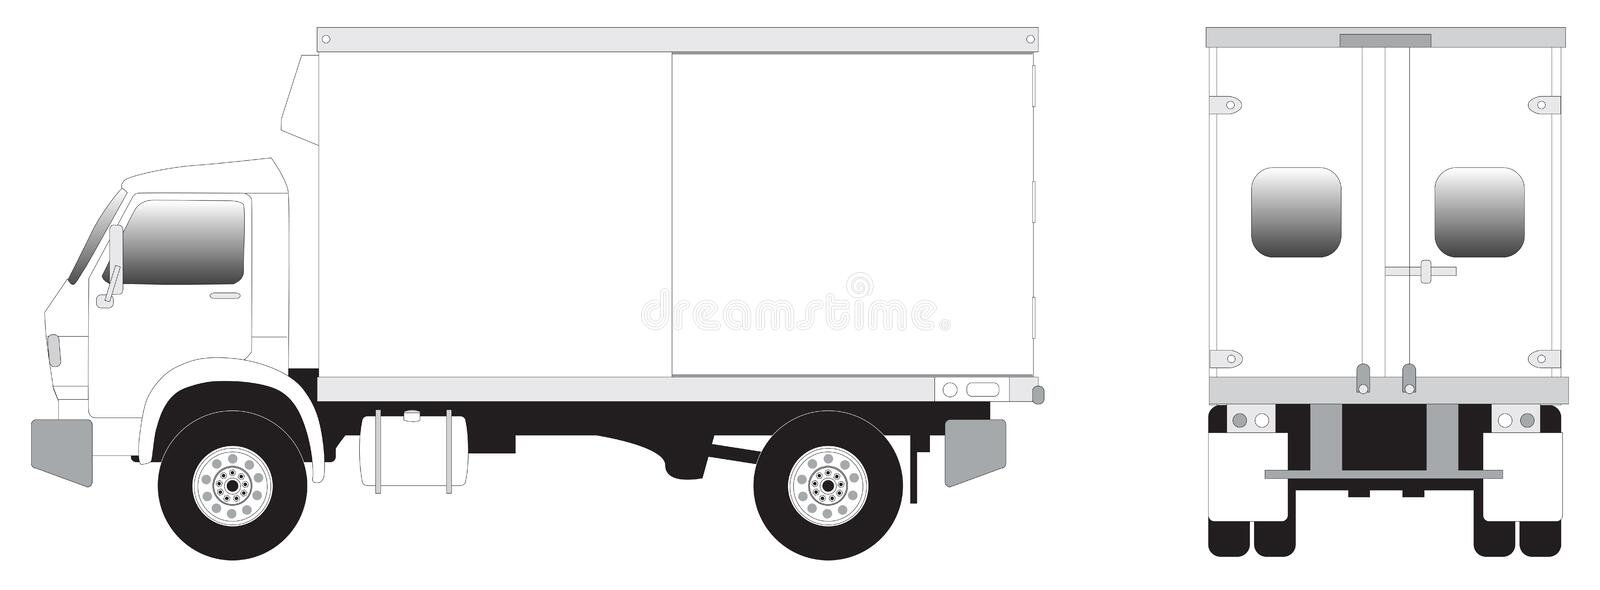 Line art - mini truck. Line art illustrration of side view of mini truck royalty free illustration